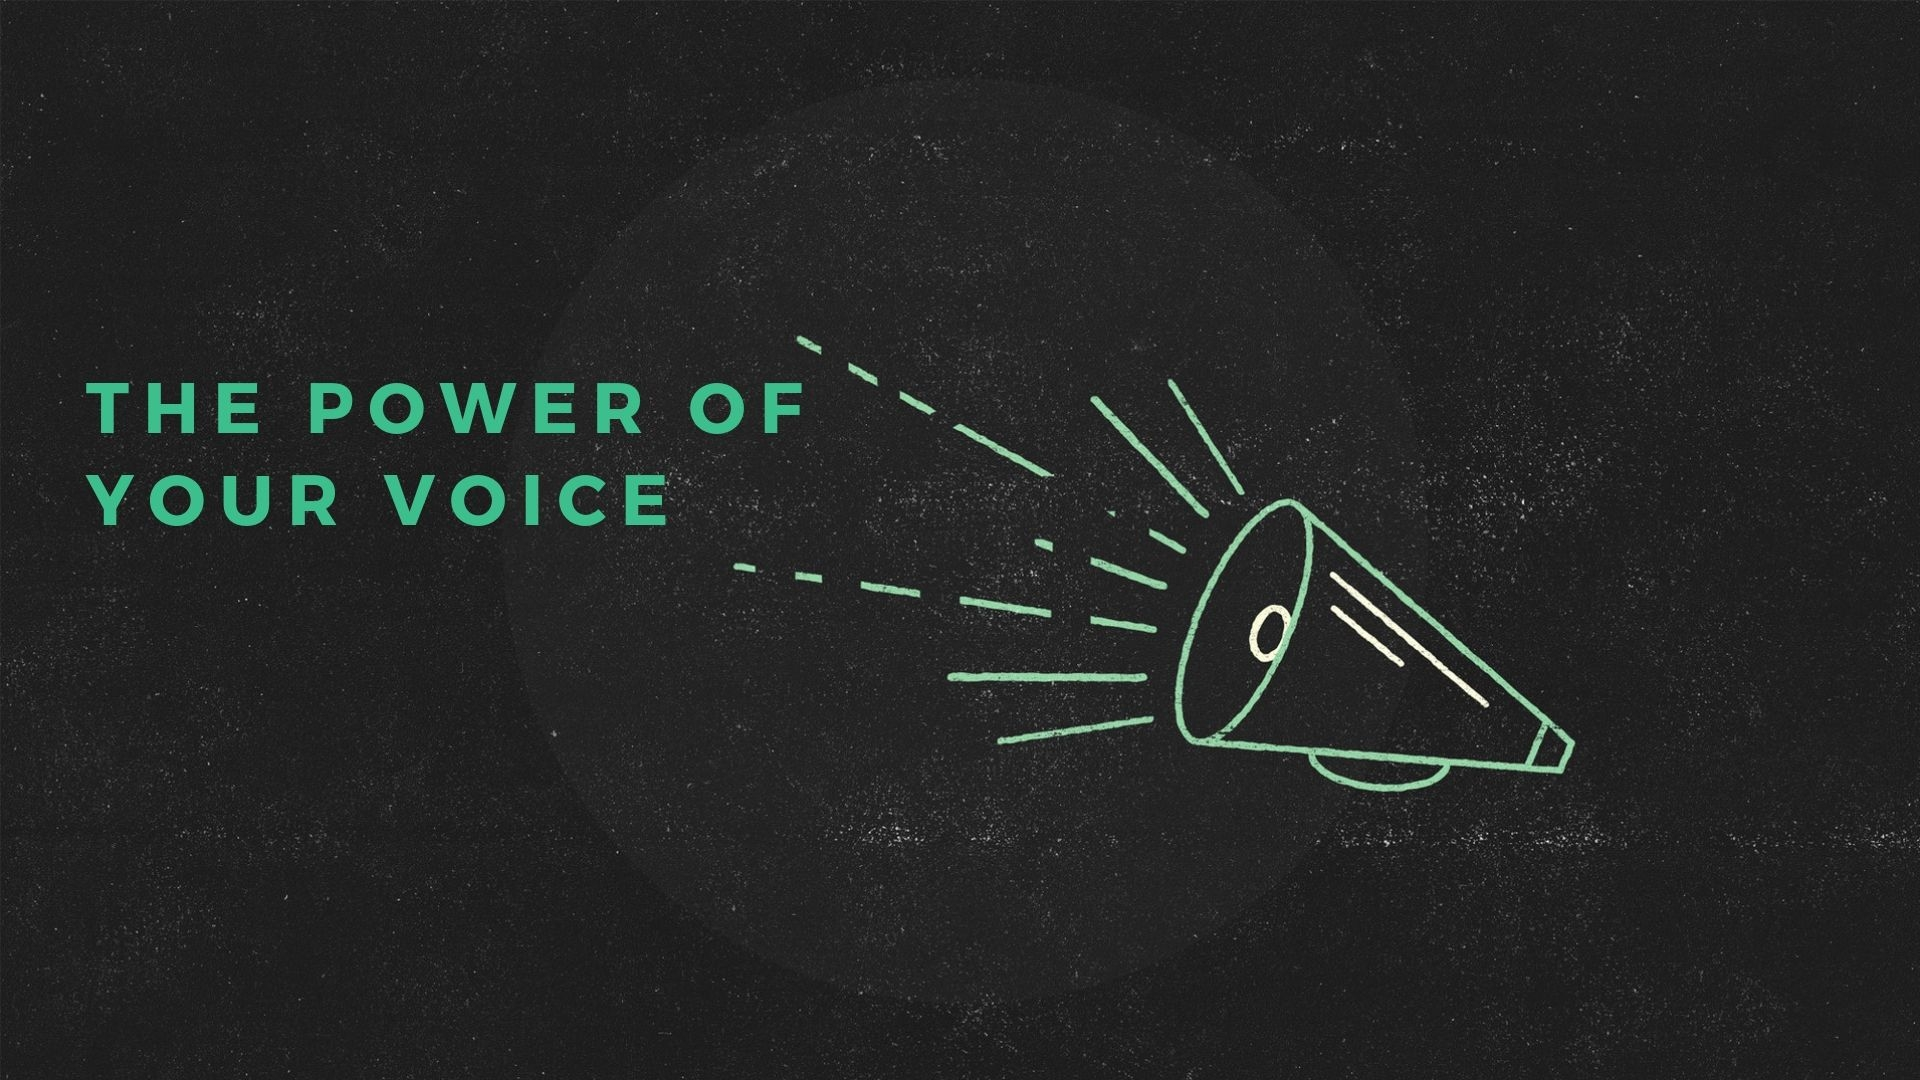 Sunday June 30, 2019 The Power Of Your Voice - Rev. Tim Ramonett